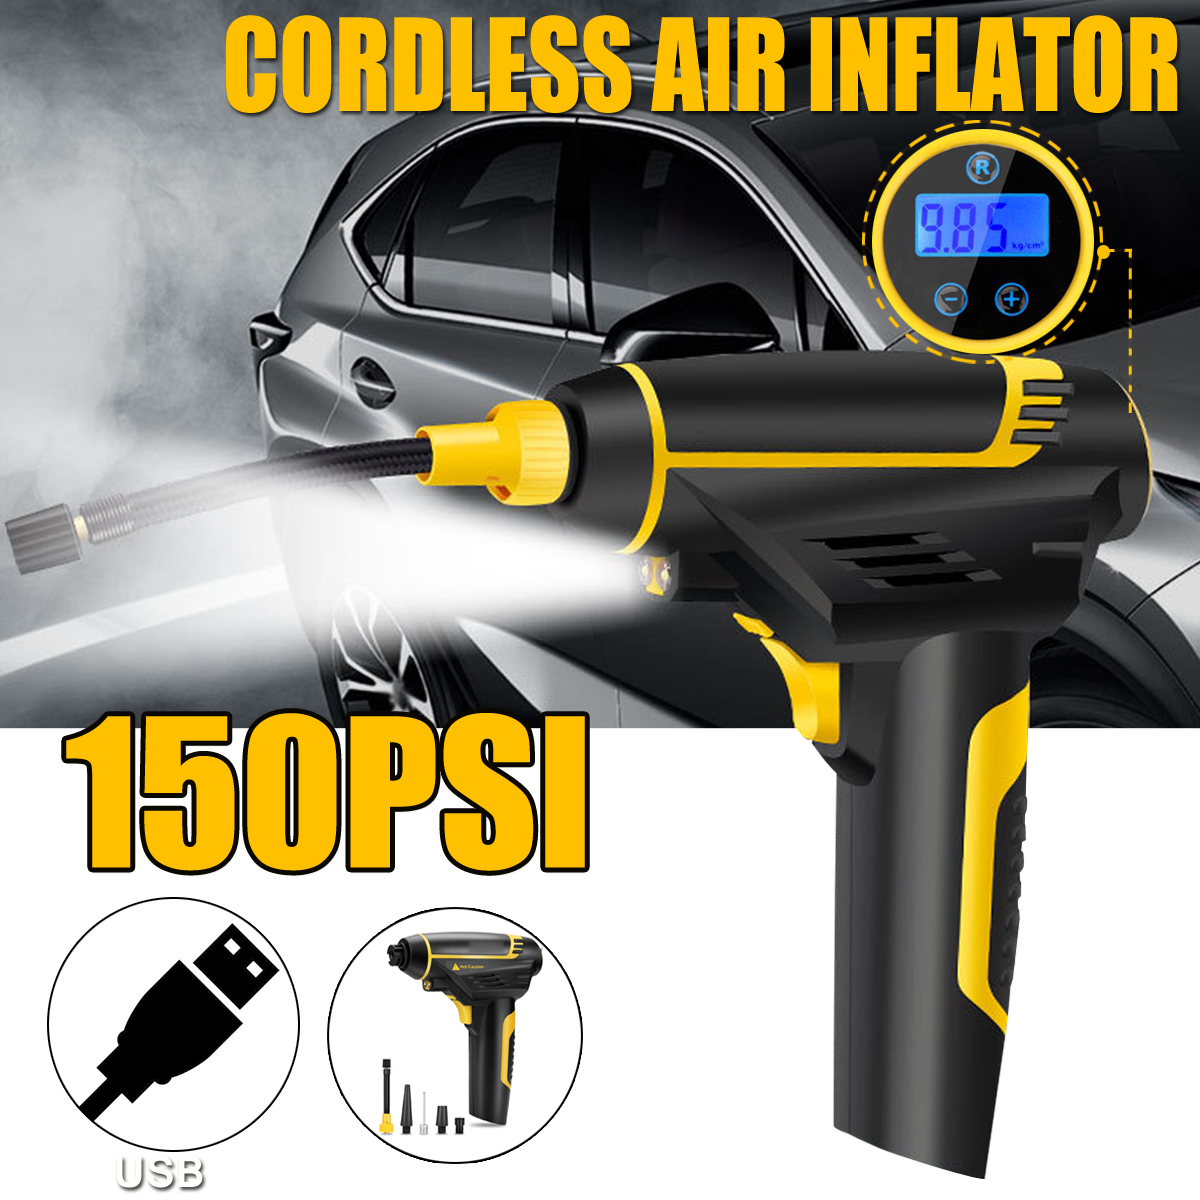 2200mA 120W 12V Portable Electric Tyre Inflator Cordless USB Air Compressor Pump With LED